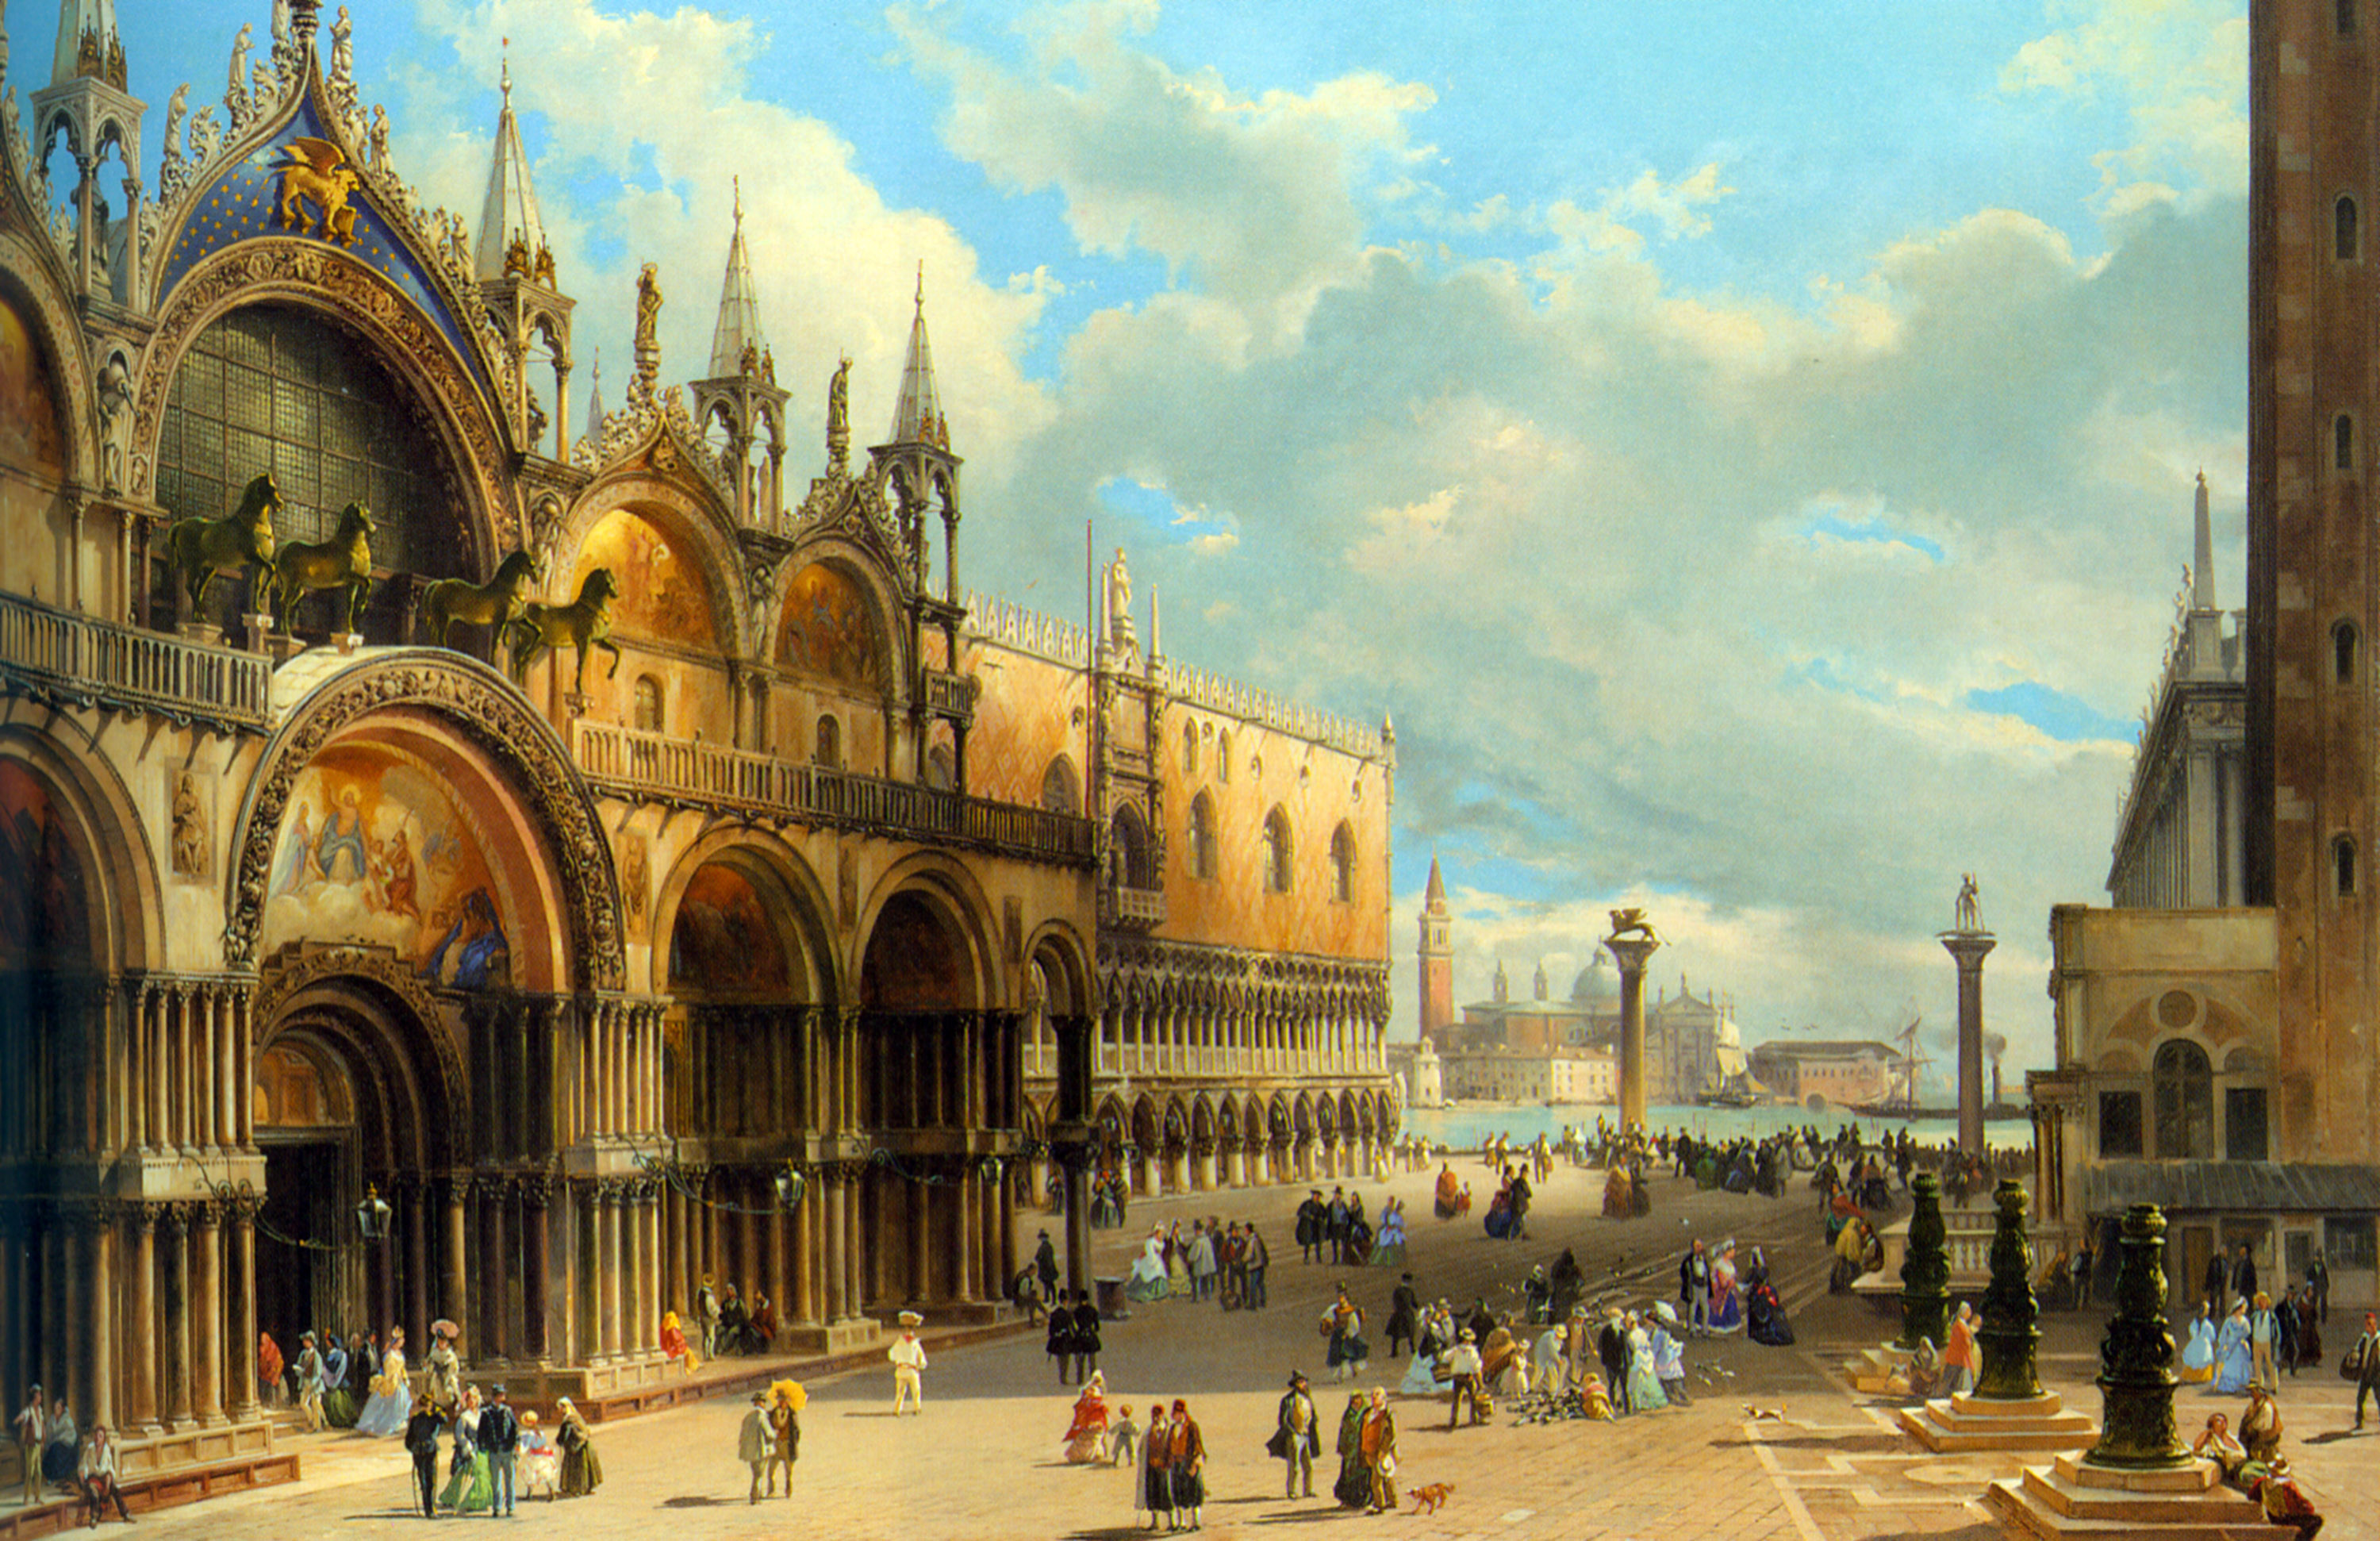 St. Marks Square and the Doge's Palace, Venice, Italy, by Carlo Grubacs